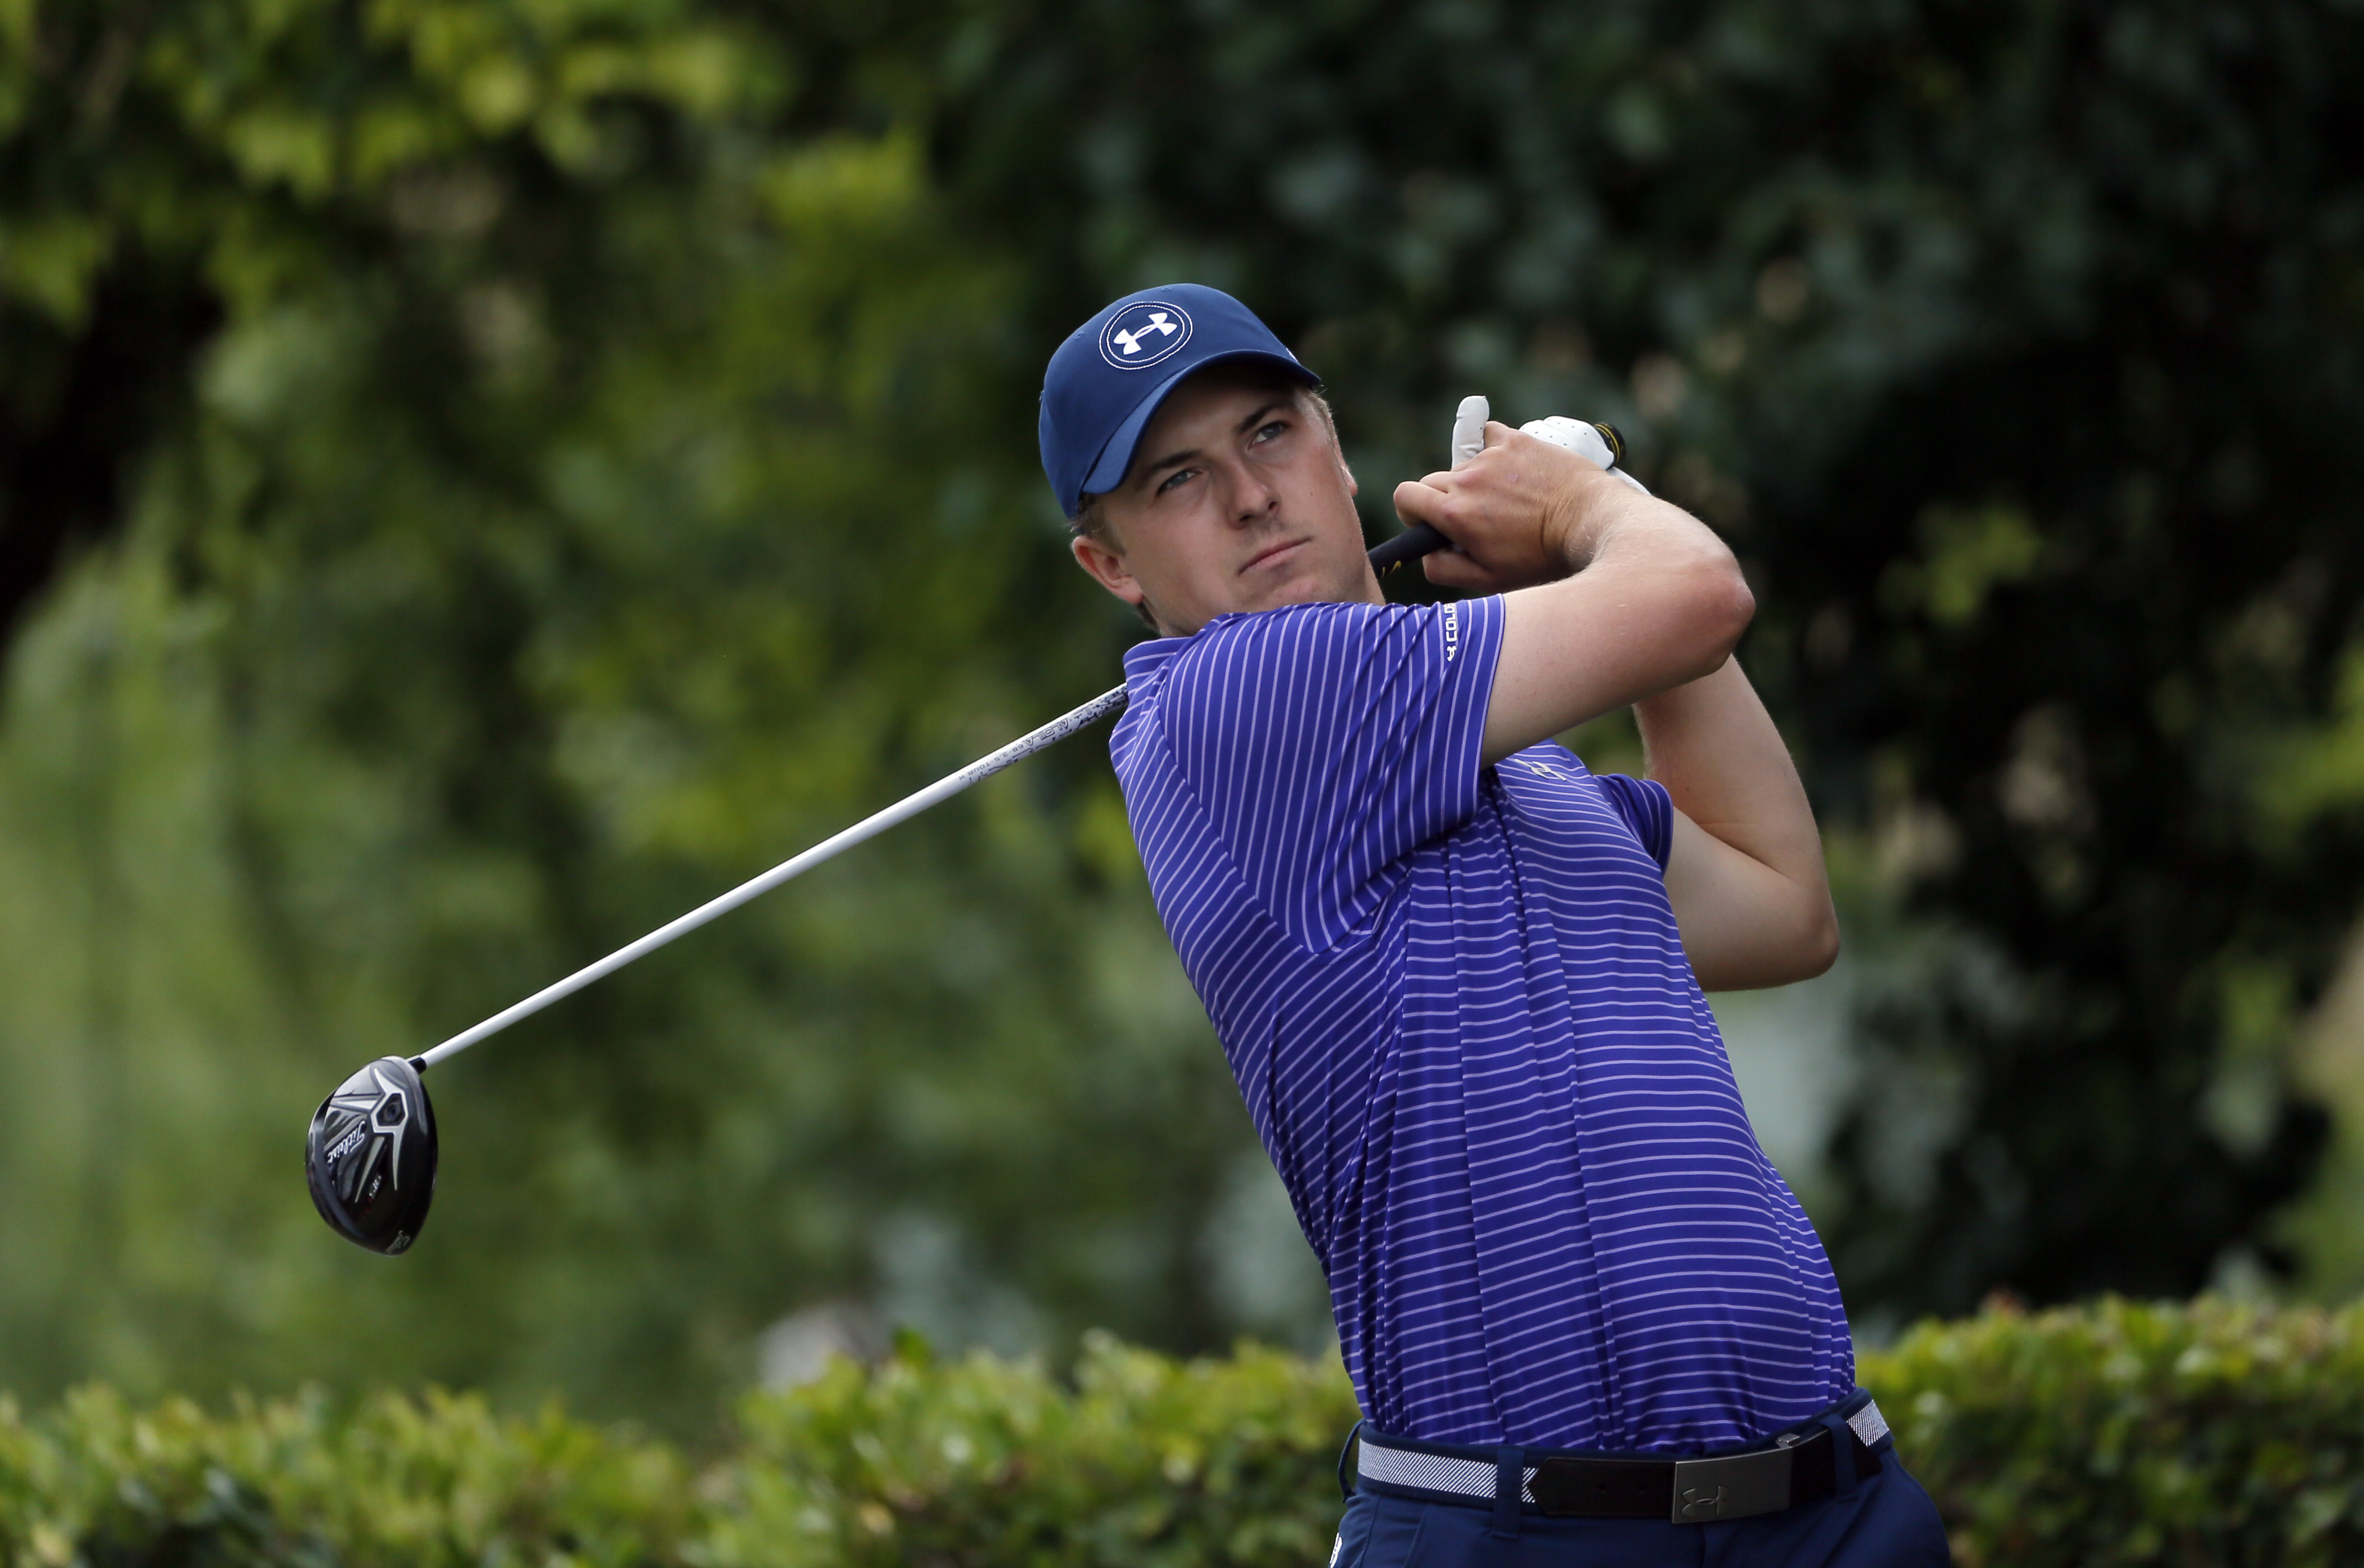 Jordan Spieth hits off of the first tee during the opening round of the Byron Nelson golf tournament, Thursday, May 19, 2016, in Irving, Texas. (AP Photo/Tony Gutierrez)